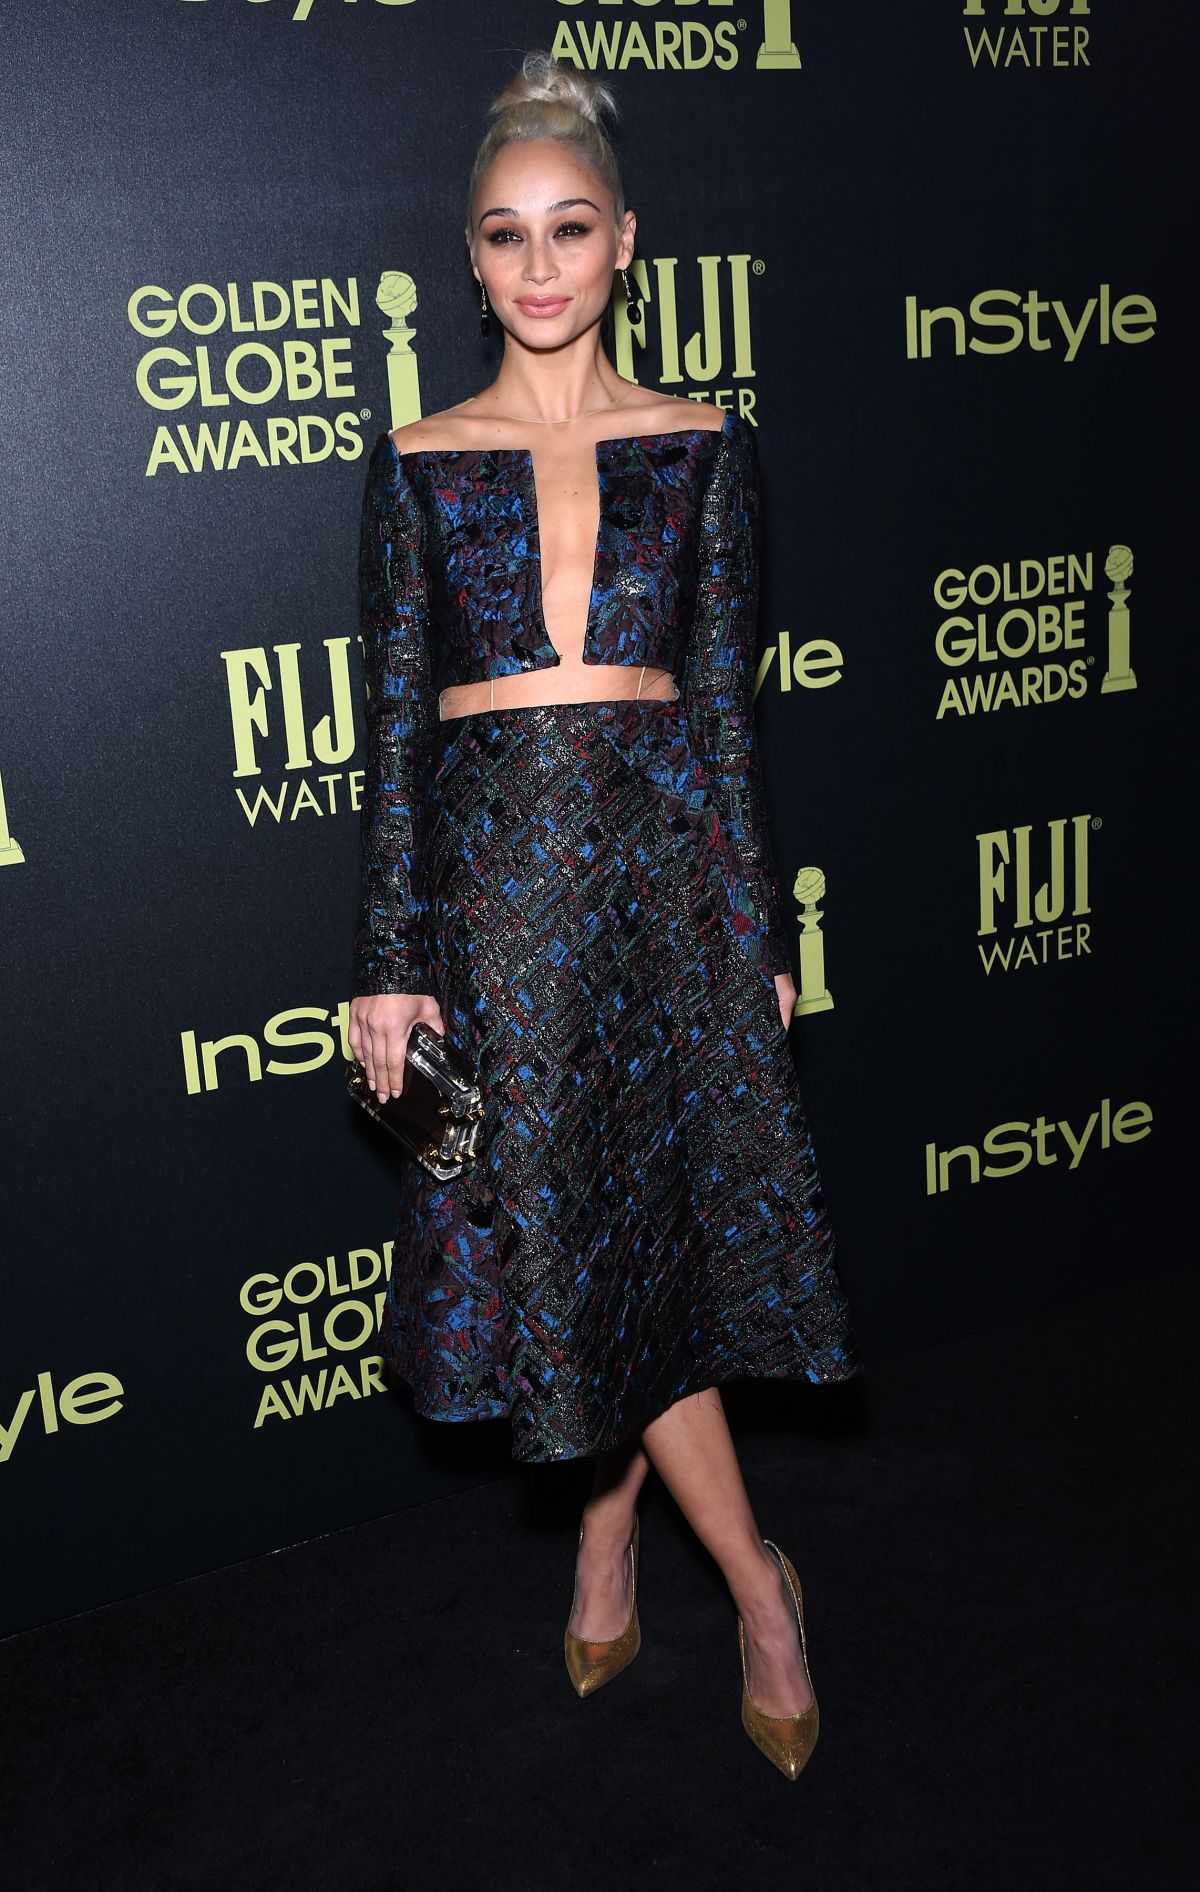 CARA SANTANA at hfpa and Instyle Celebrate 2016 Golden Globe Award Season in West Hollywood 11/17/2015